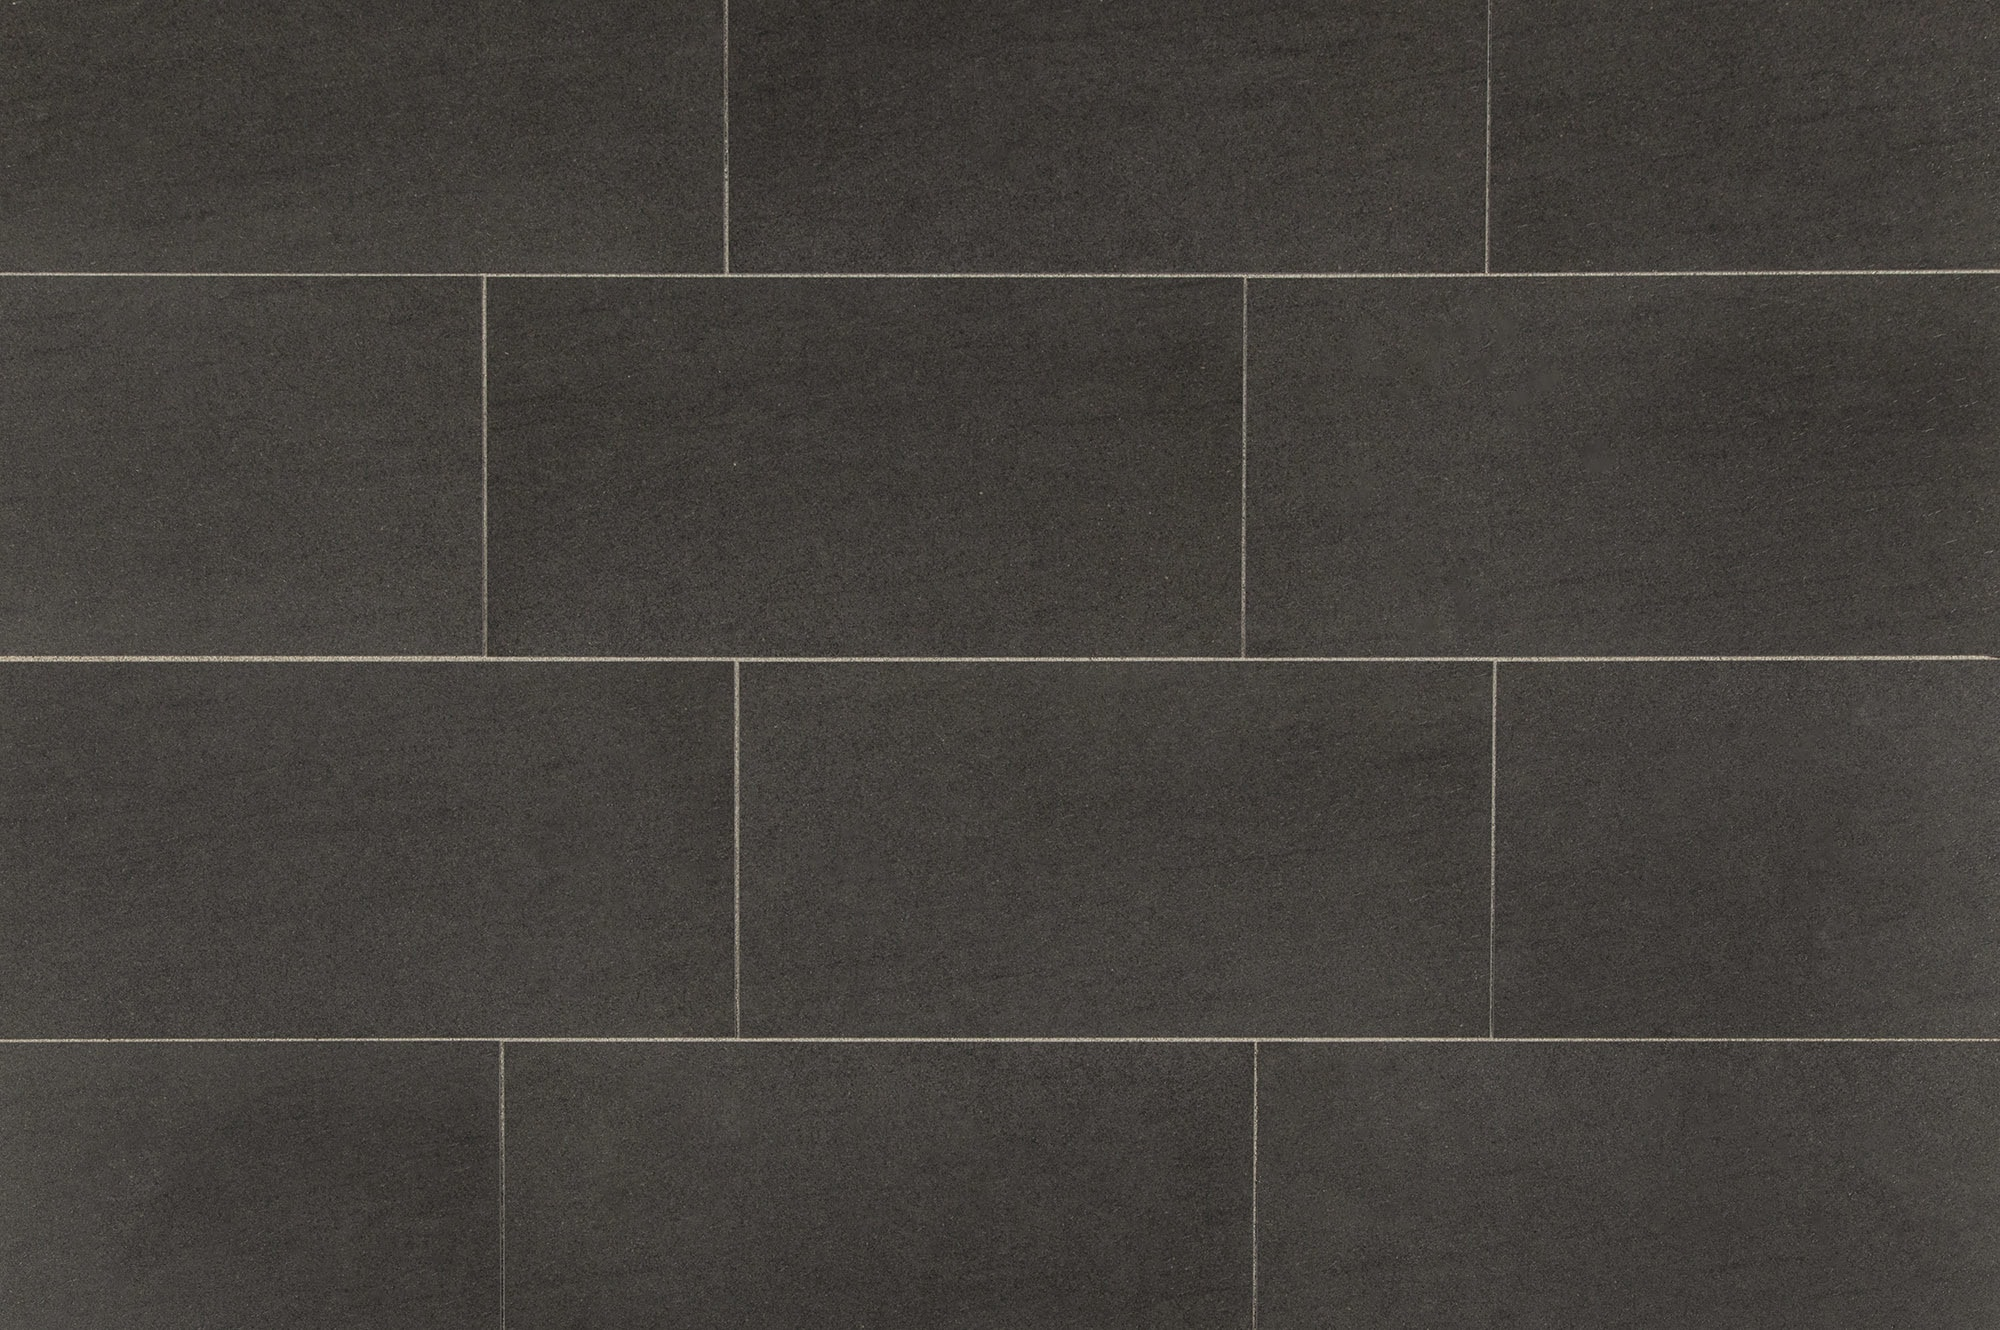 dark grey floor tile texture